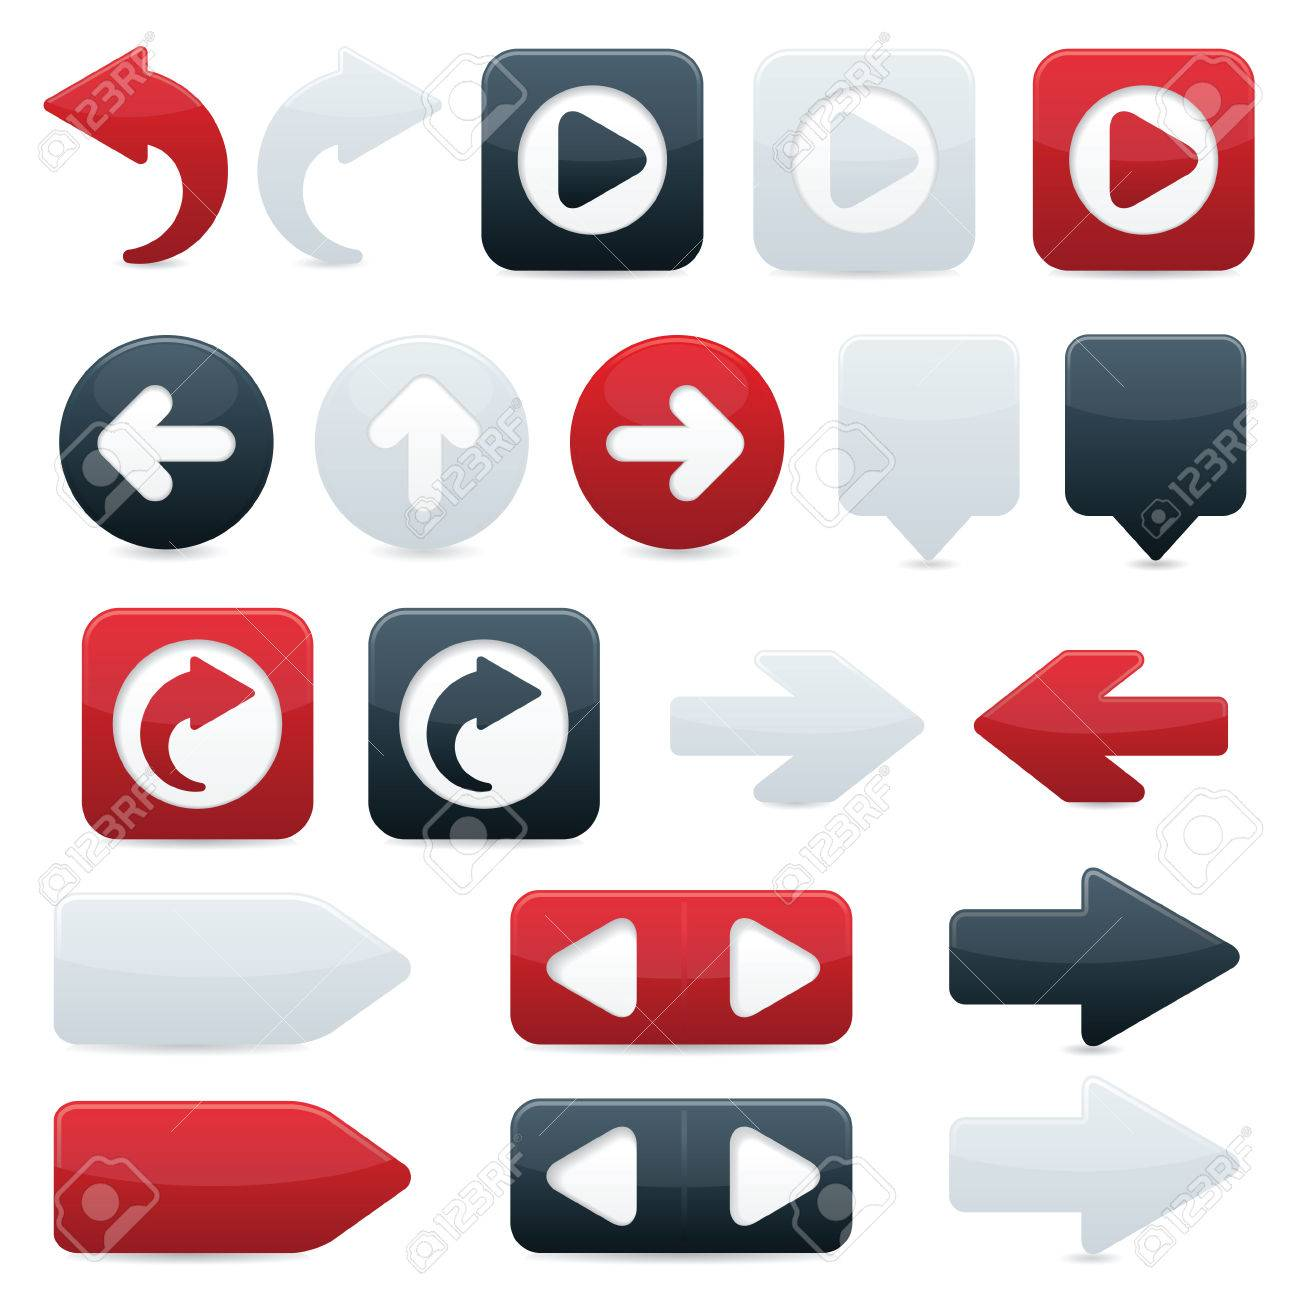 Glossy directional arrow buttons in sleek black, shiny red and smooth white Stock Vector - 7009764